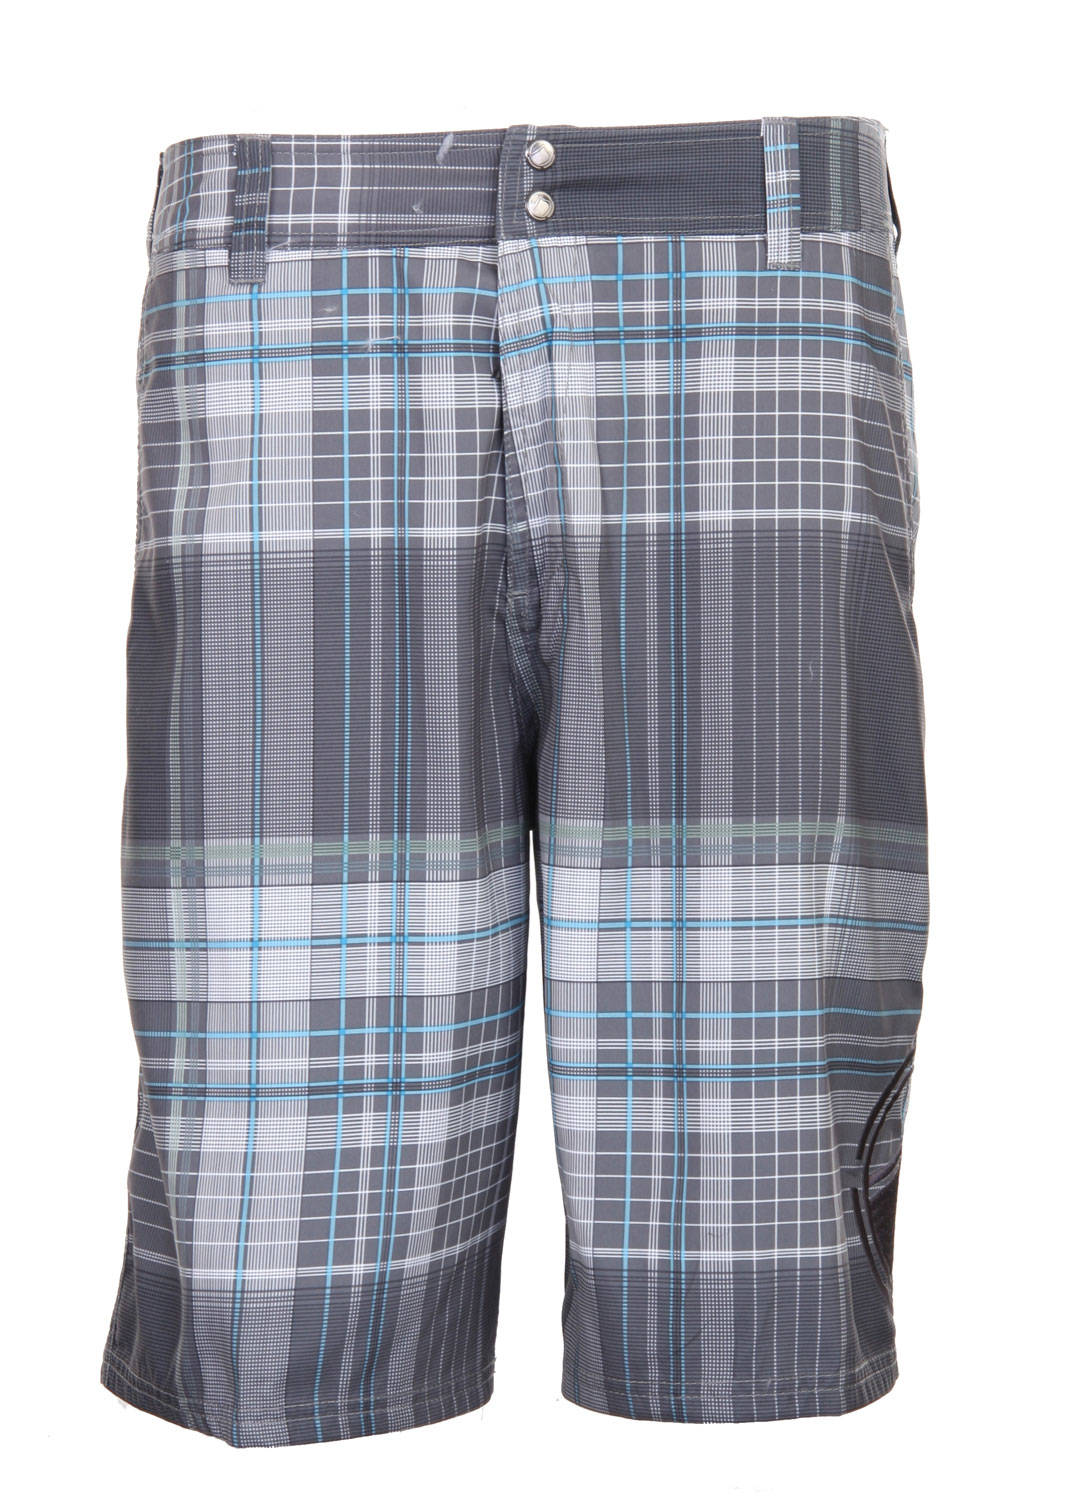 "Surf Look preppy with these plaid designed boardshorts. Be different and wear prints with confidence. The Liquid Force Plaidskis Boardshort is perfect to add that needed texture and print to your outfit. Subtle enough to wear everywhere, pair it with a summer tank top or T-shirt and your outfit is complete. Get ready to hit the beach with this ultra comfortable, 100% polyester made boardshorts.Key Features of The Liquid Force Plaidskis Boardshorts: Sublimated Quick Dry Megasuede 22"" Outseam Snap Front Waist with Lycra Fly Closure Front Side Seam Trouser Pockets 2 Back Flap Pockets with Velcro Closure 100% Polyester - $20.96"